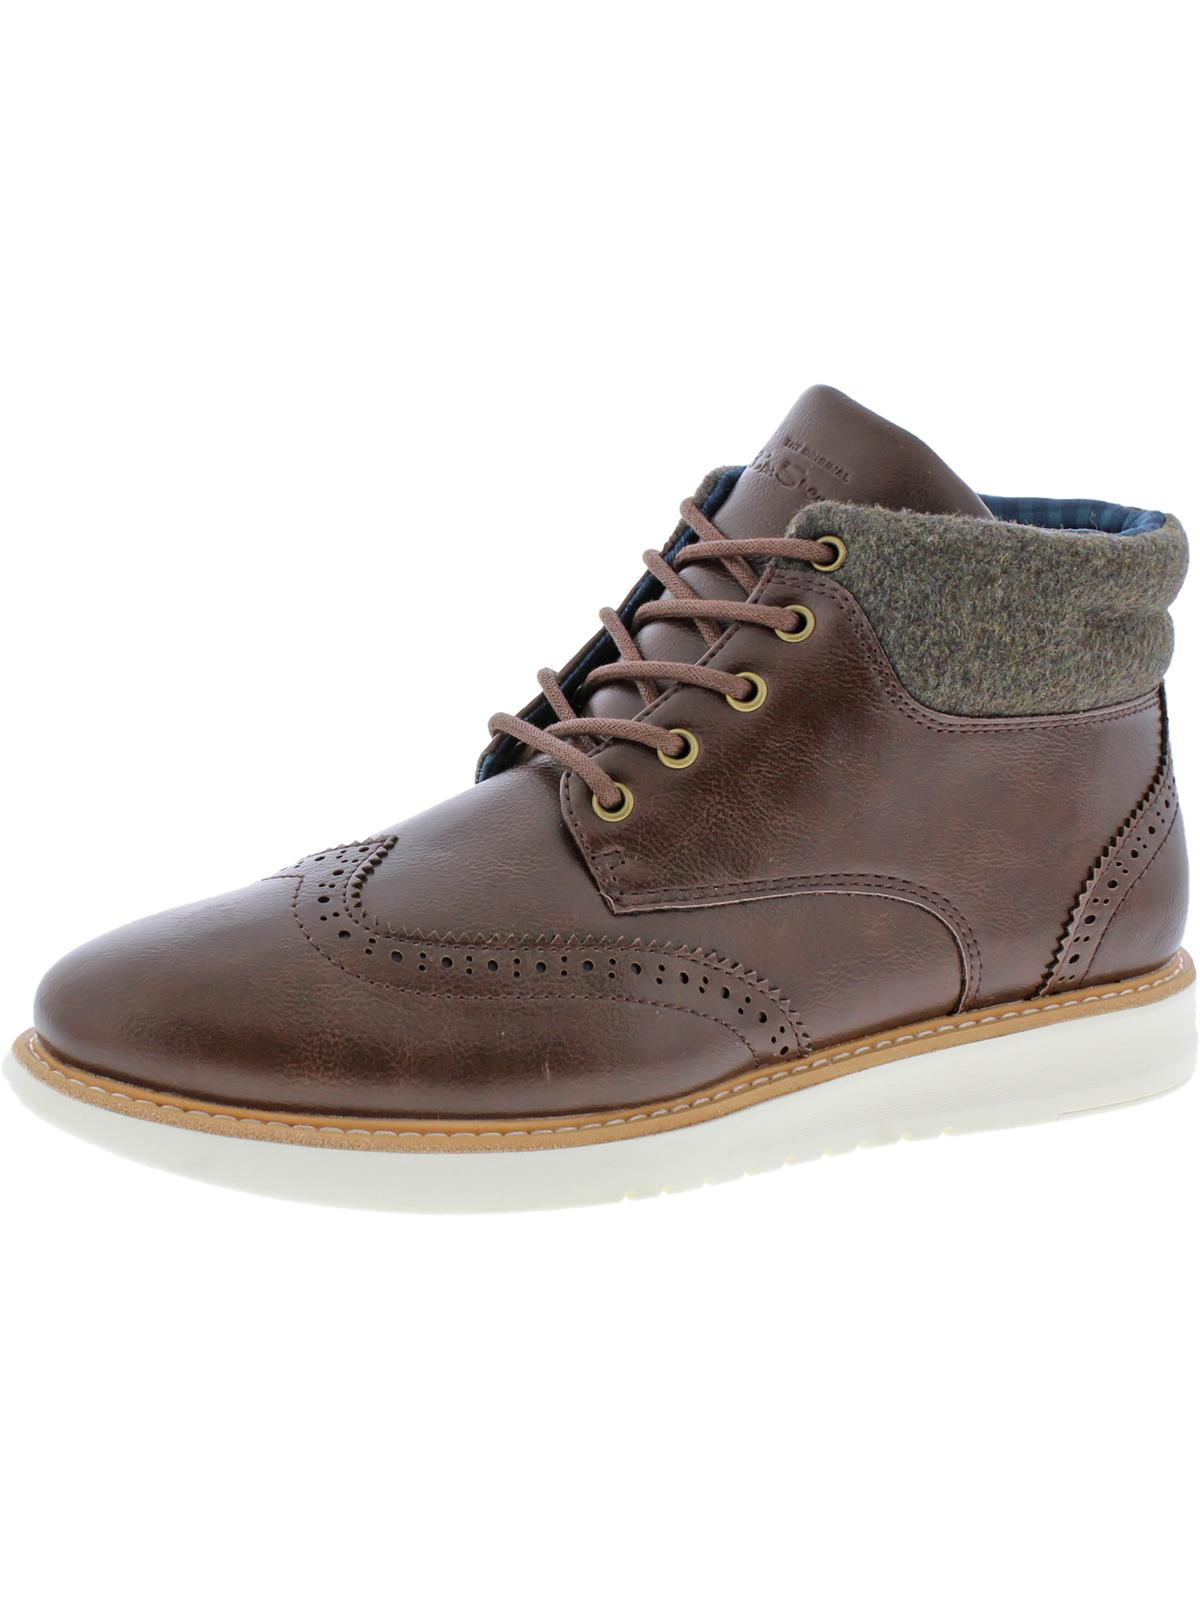 Ben Sherman Mens Nu Casual Wingtip Oxford